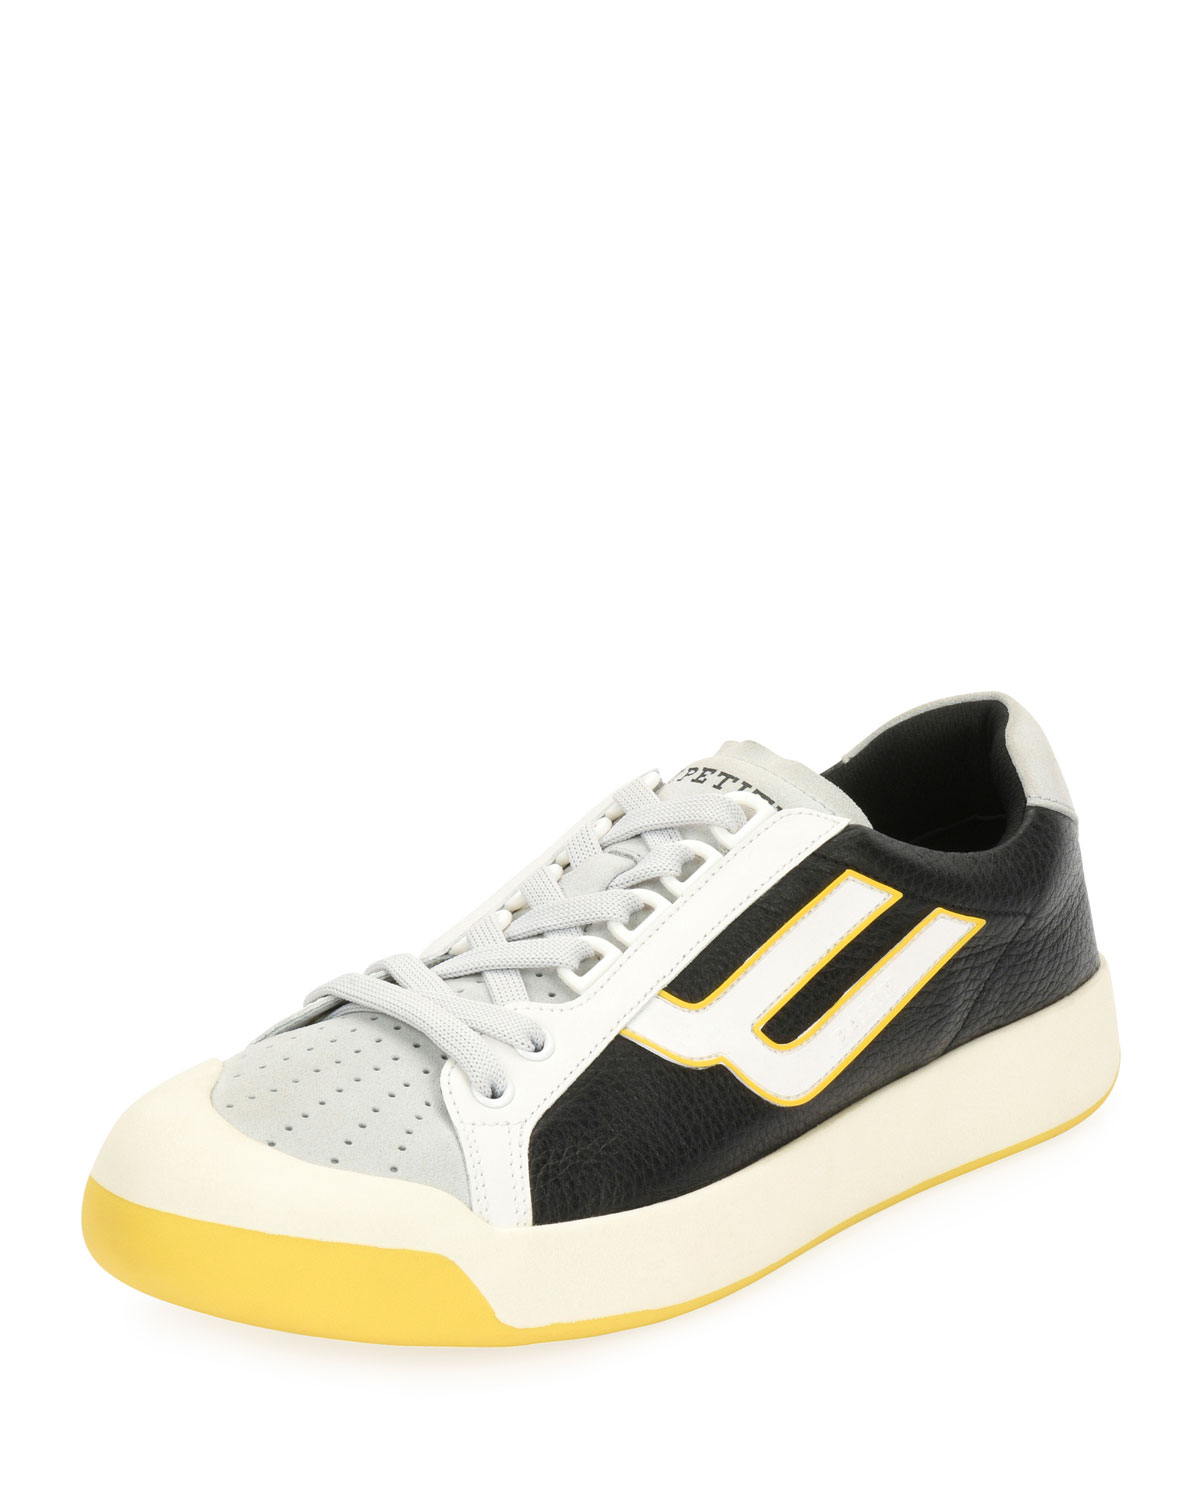 Competition Retro Low-Top Sneakers